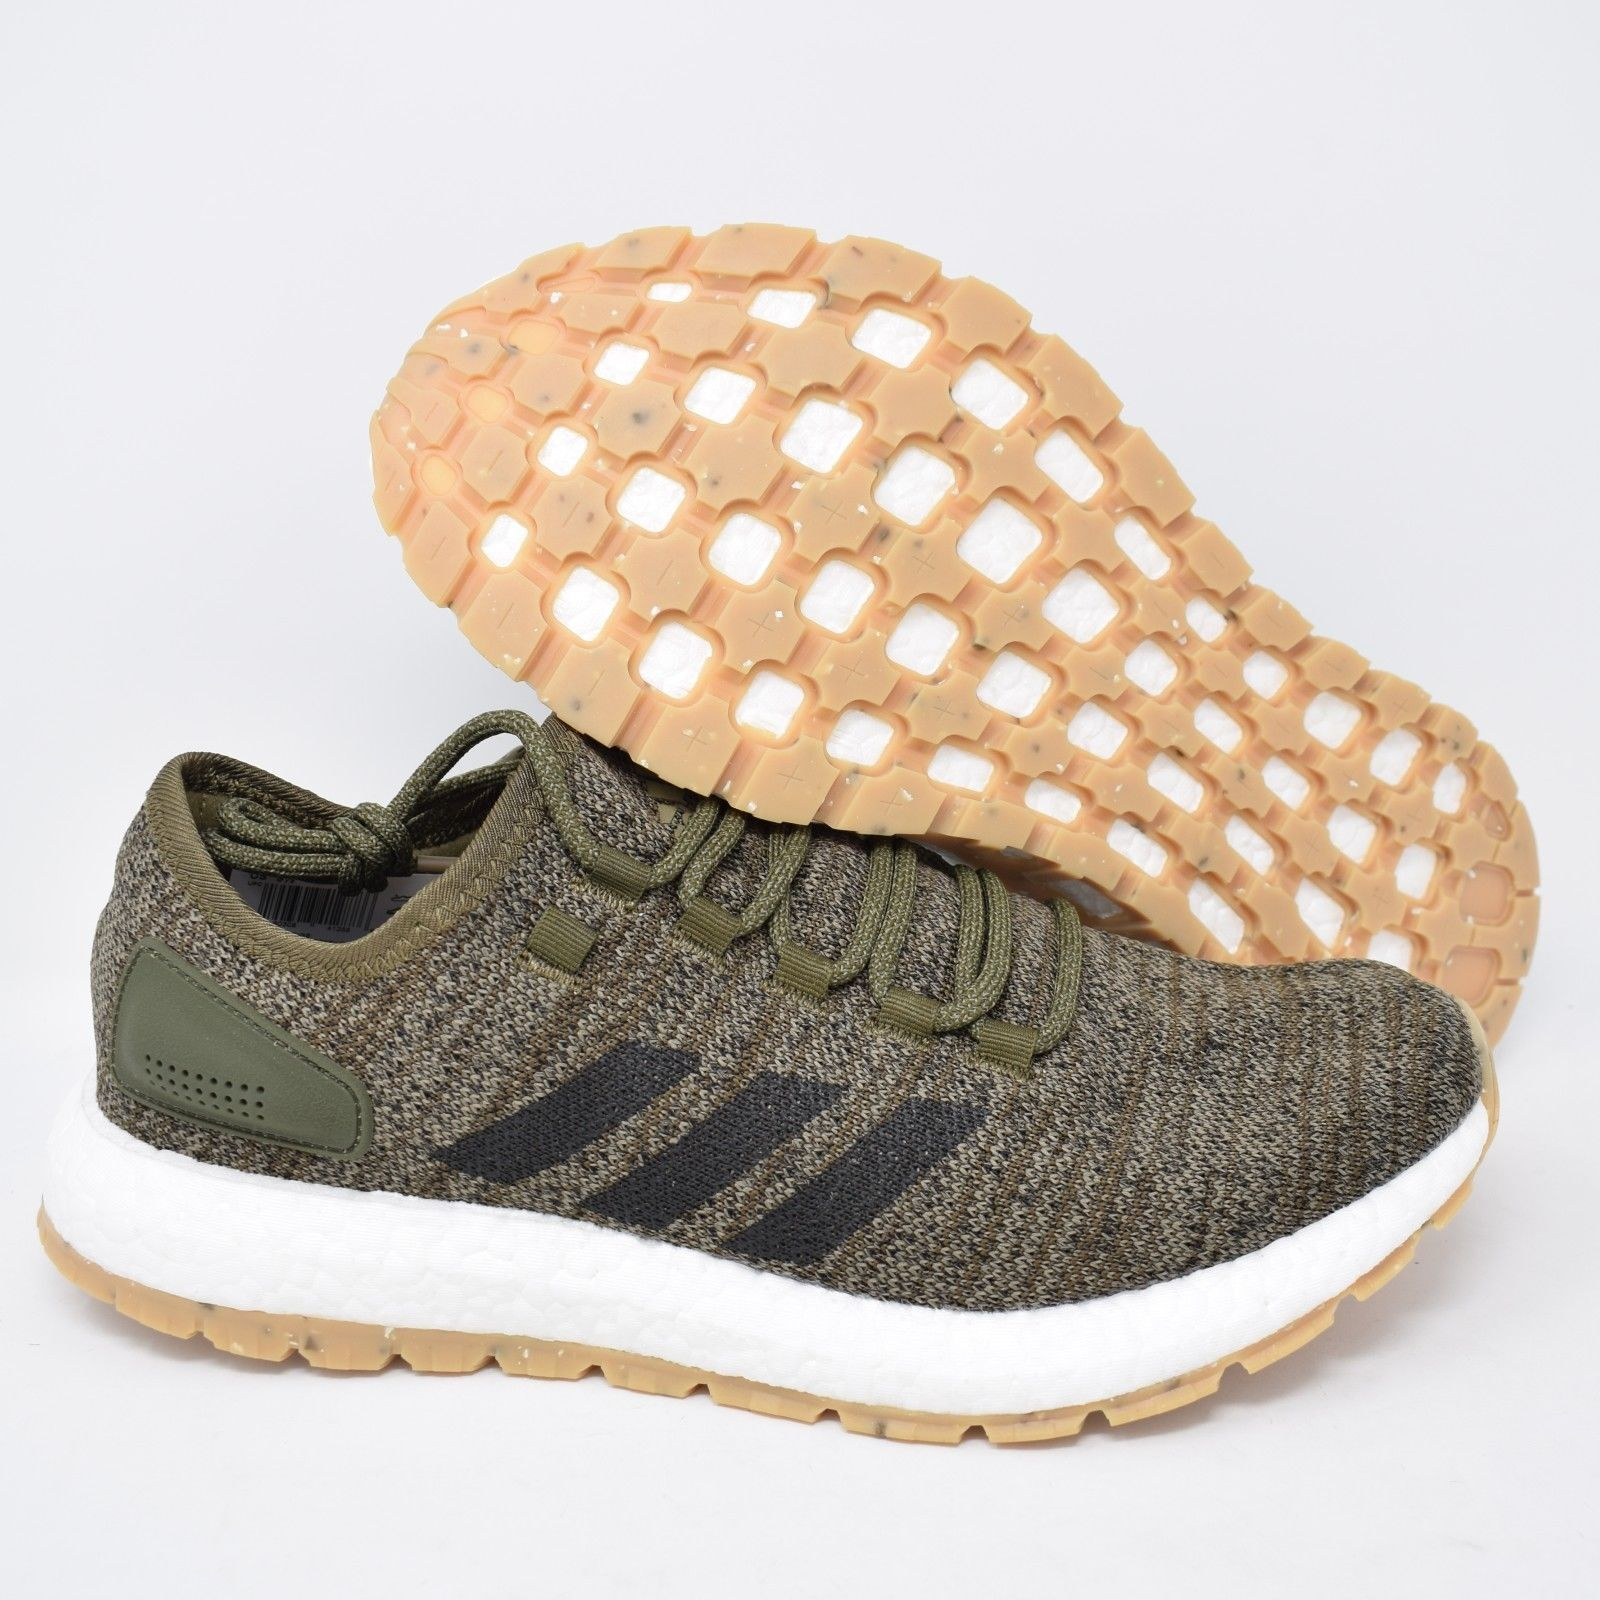 Adidas PureBOOST All Terrain S80784 Mens Running shoes Trace Brown